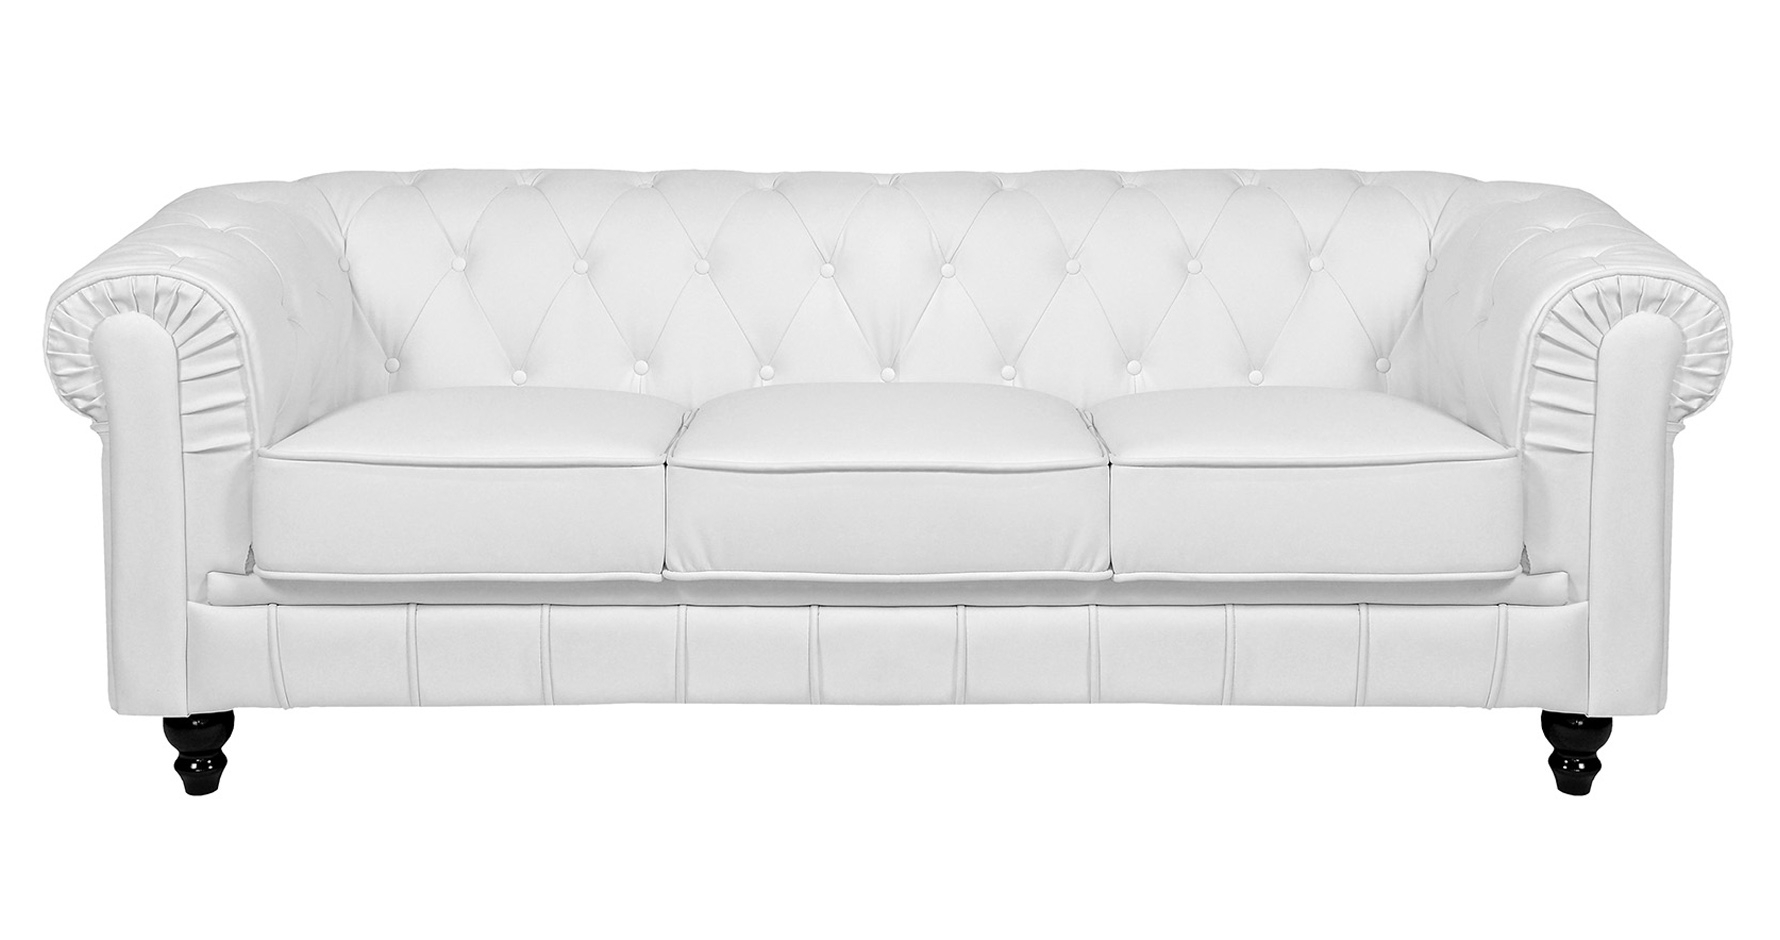 DECO IN PARIS Canape 3 places blanc chesterfield can